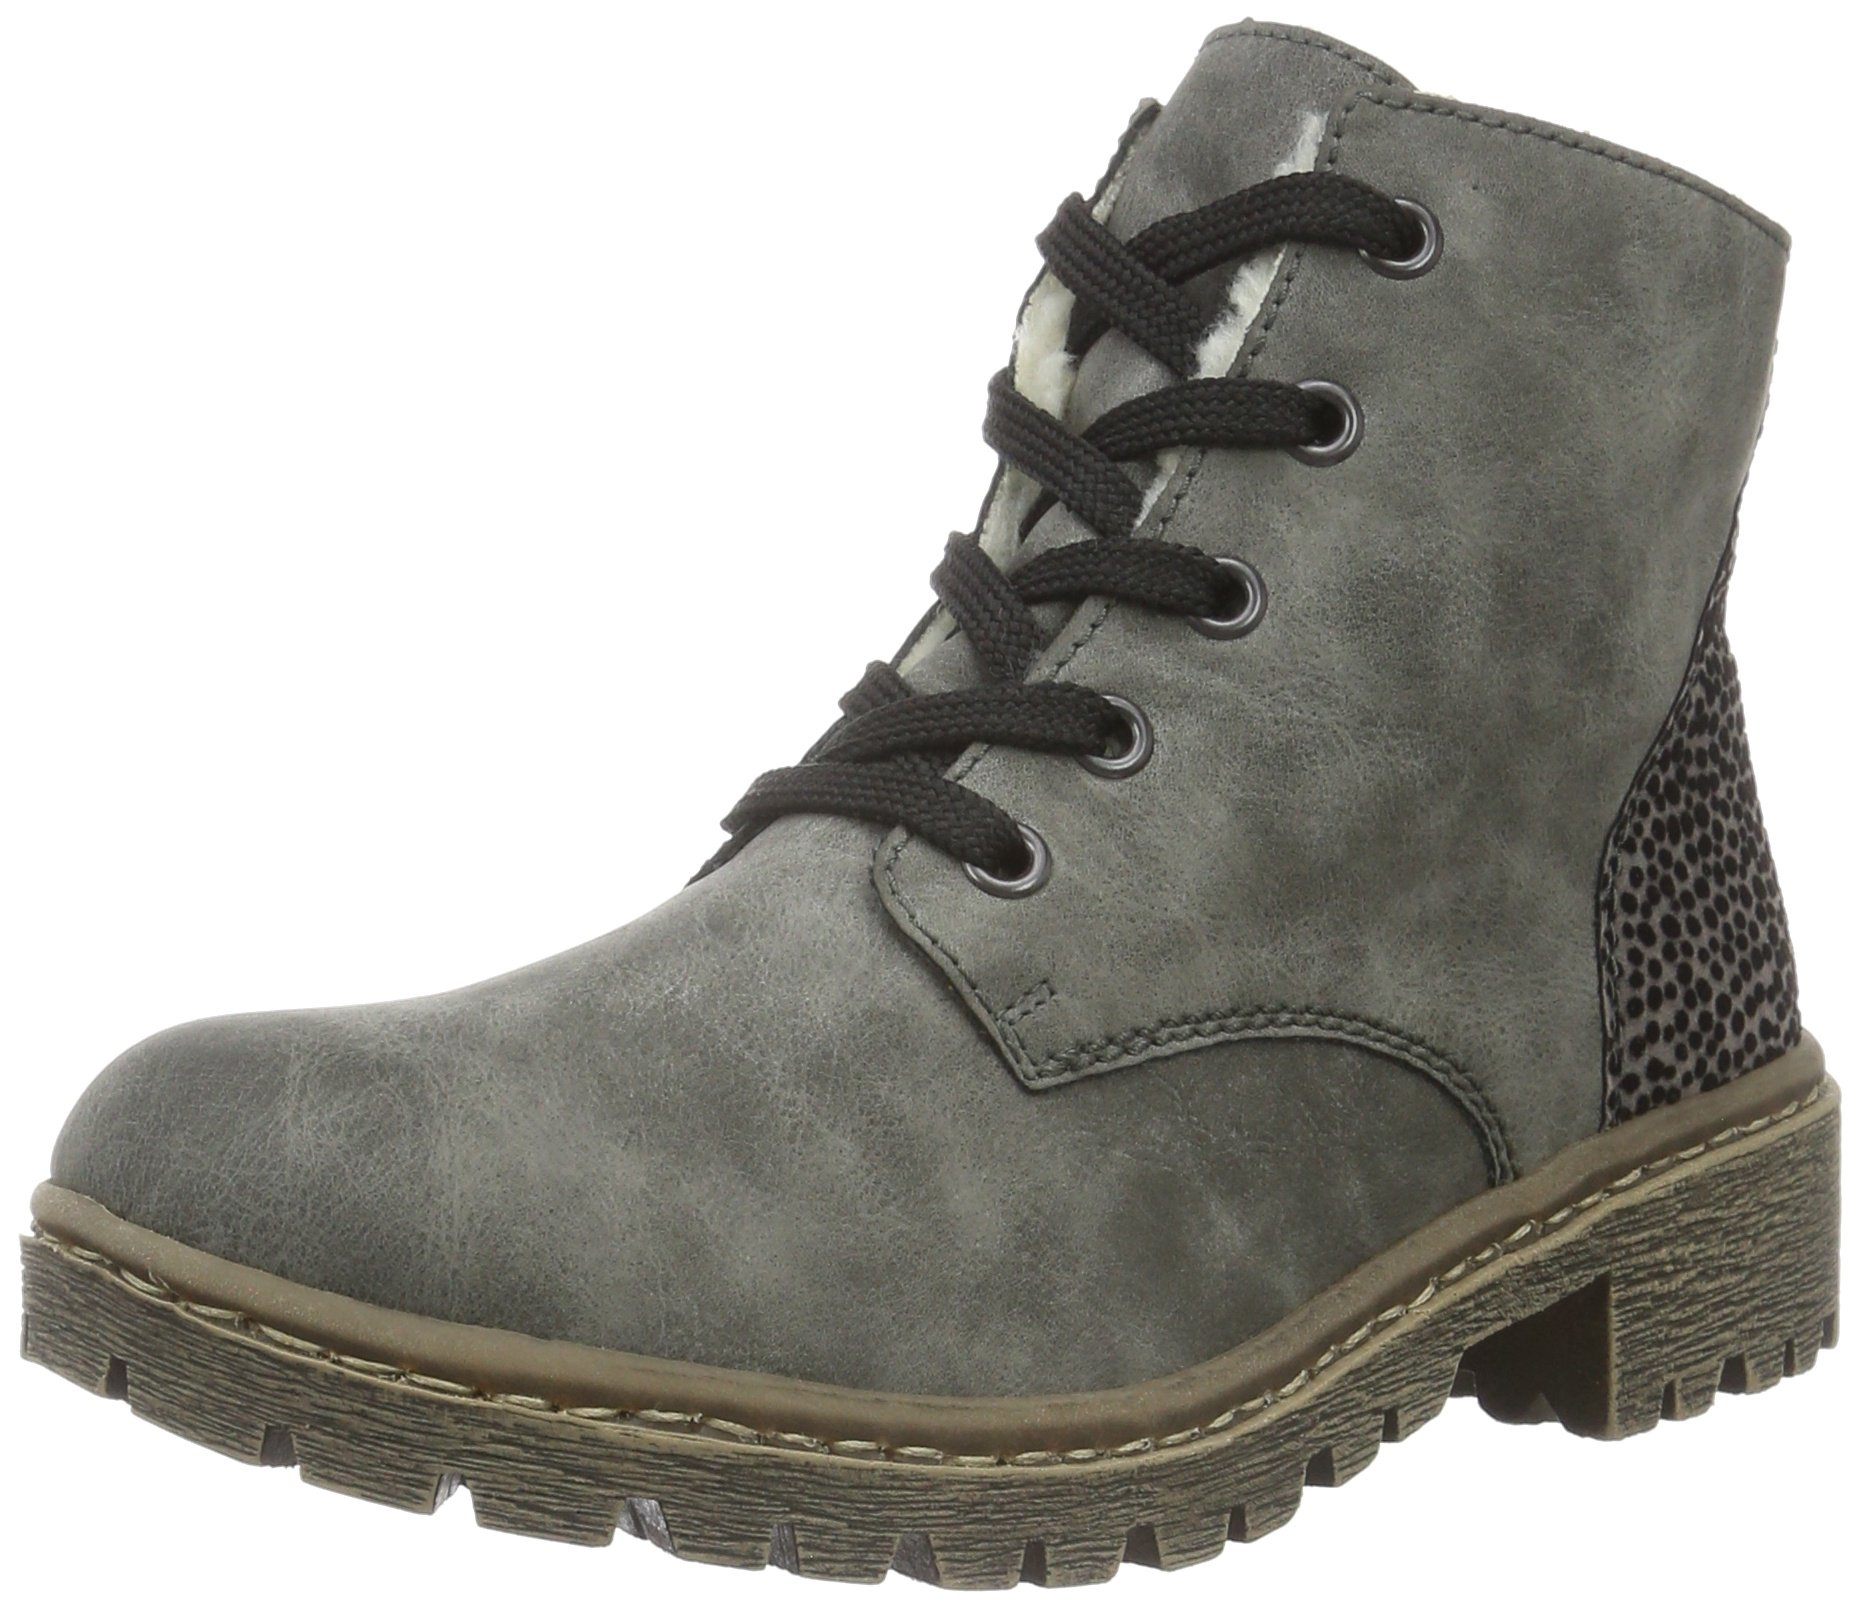 rieker womens y8300 ankle boots grey smoke grau 46 6 uk new ebay. Black Bedroom Furniture Sets. Home Design Ideas